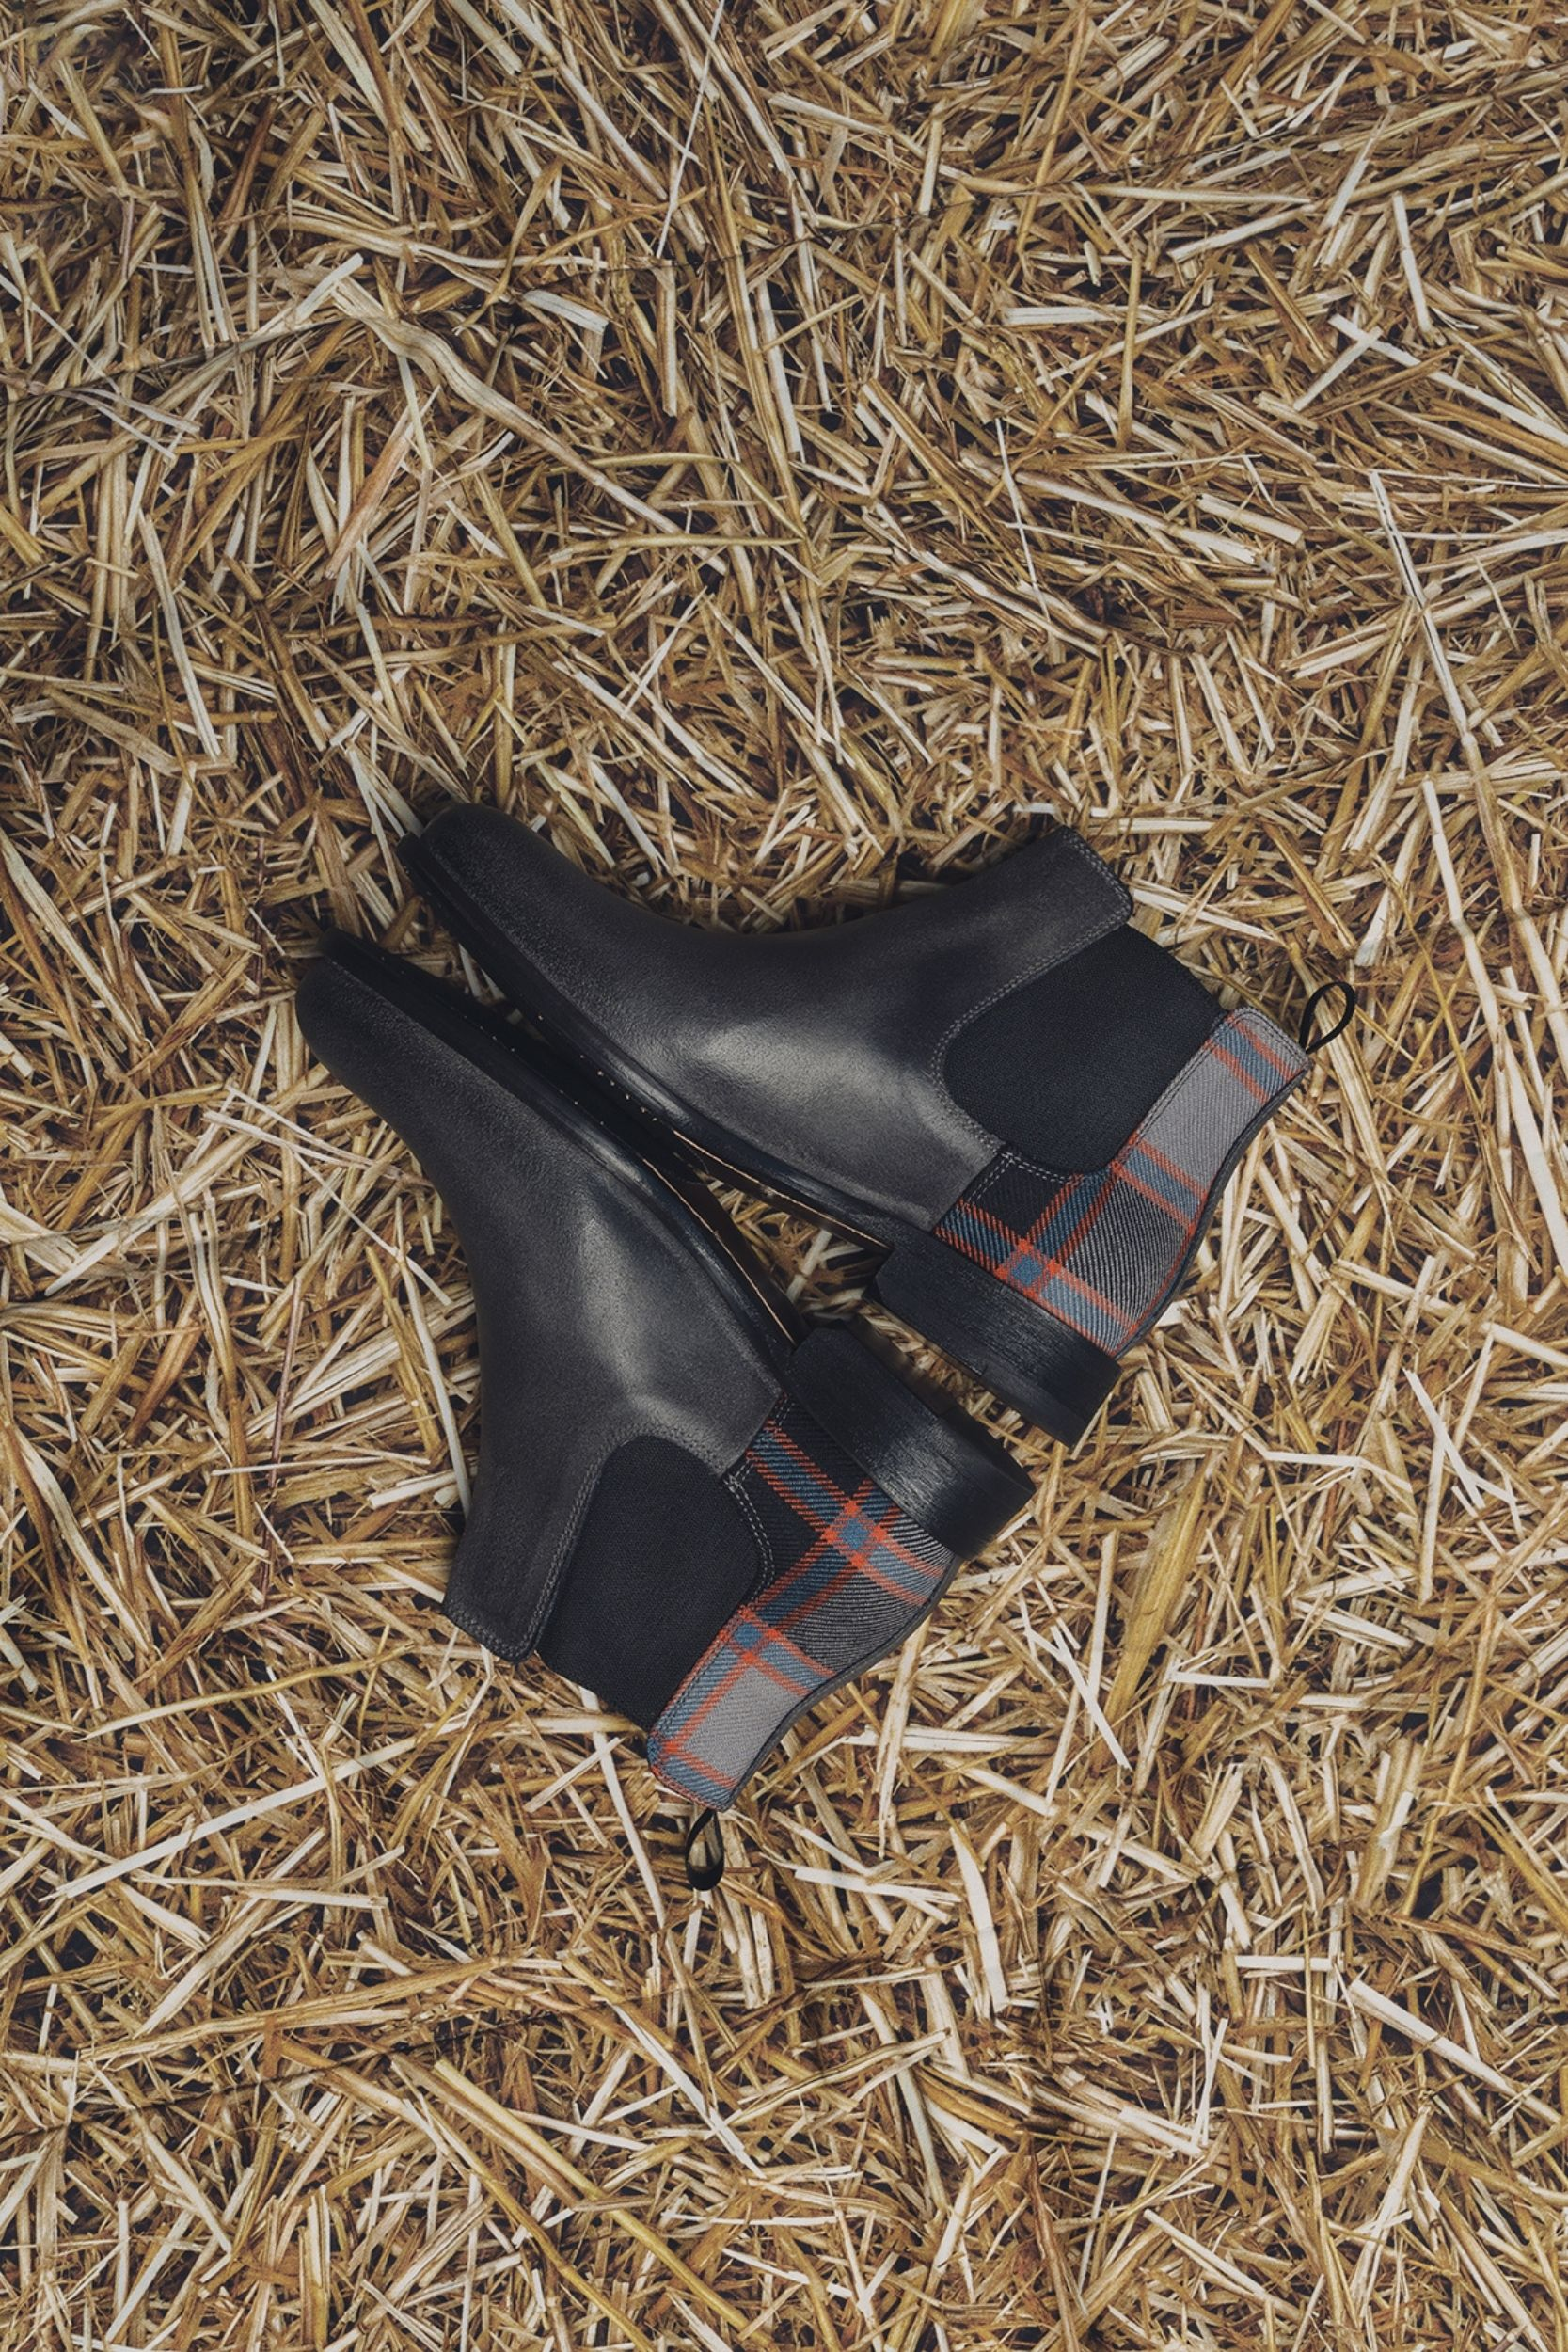 fog scotland boots from Liebre Style chelsea boot collection inspired in tartans